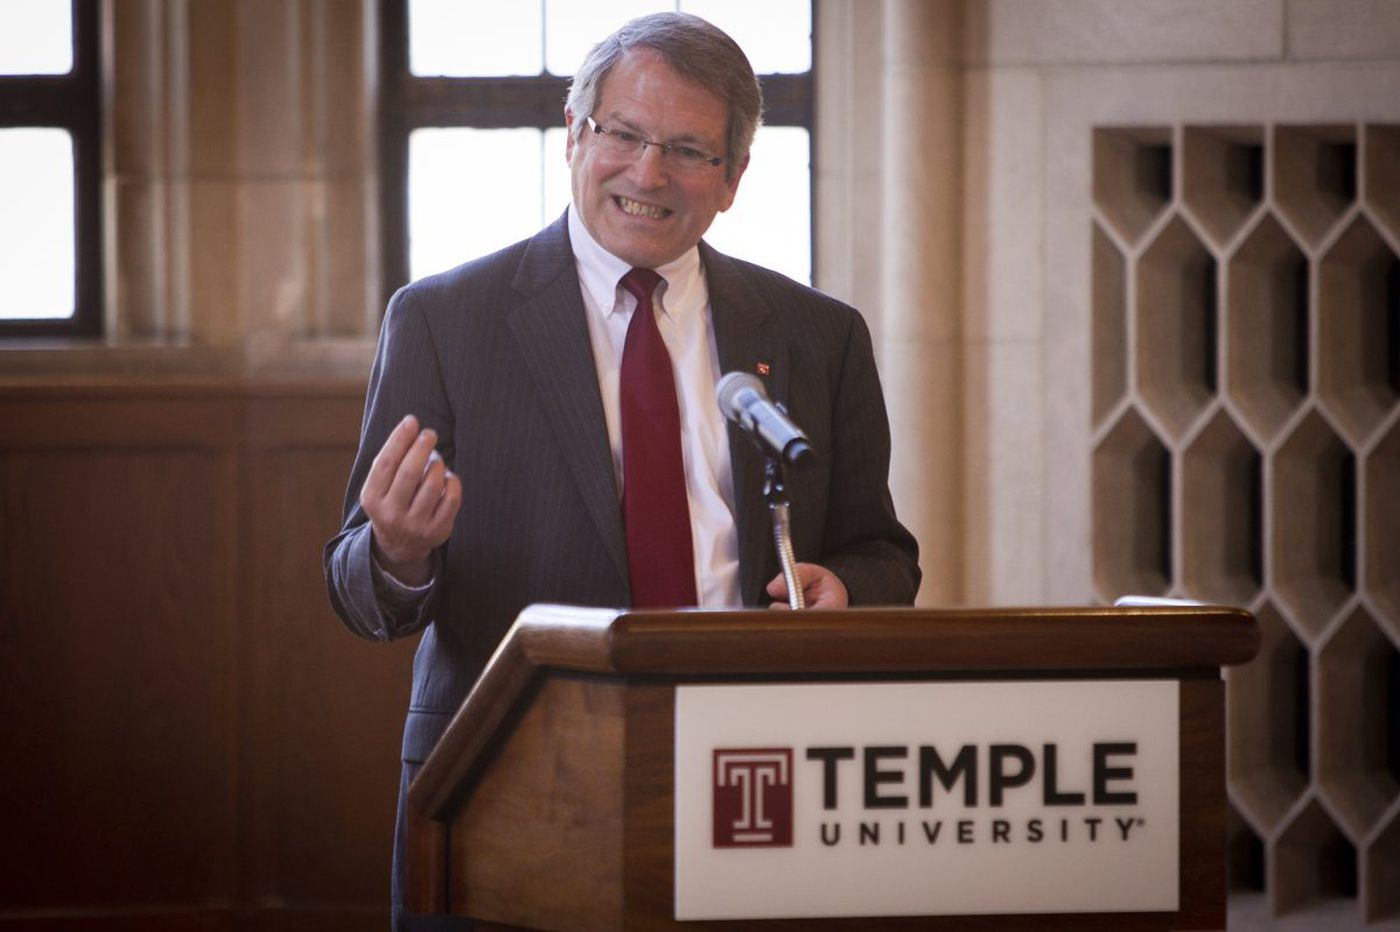 Former Temple president takes job at University of Wyoming